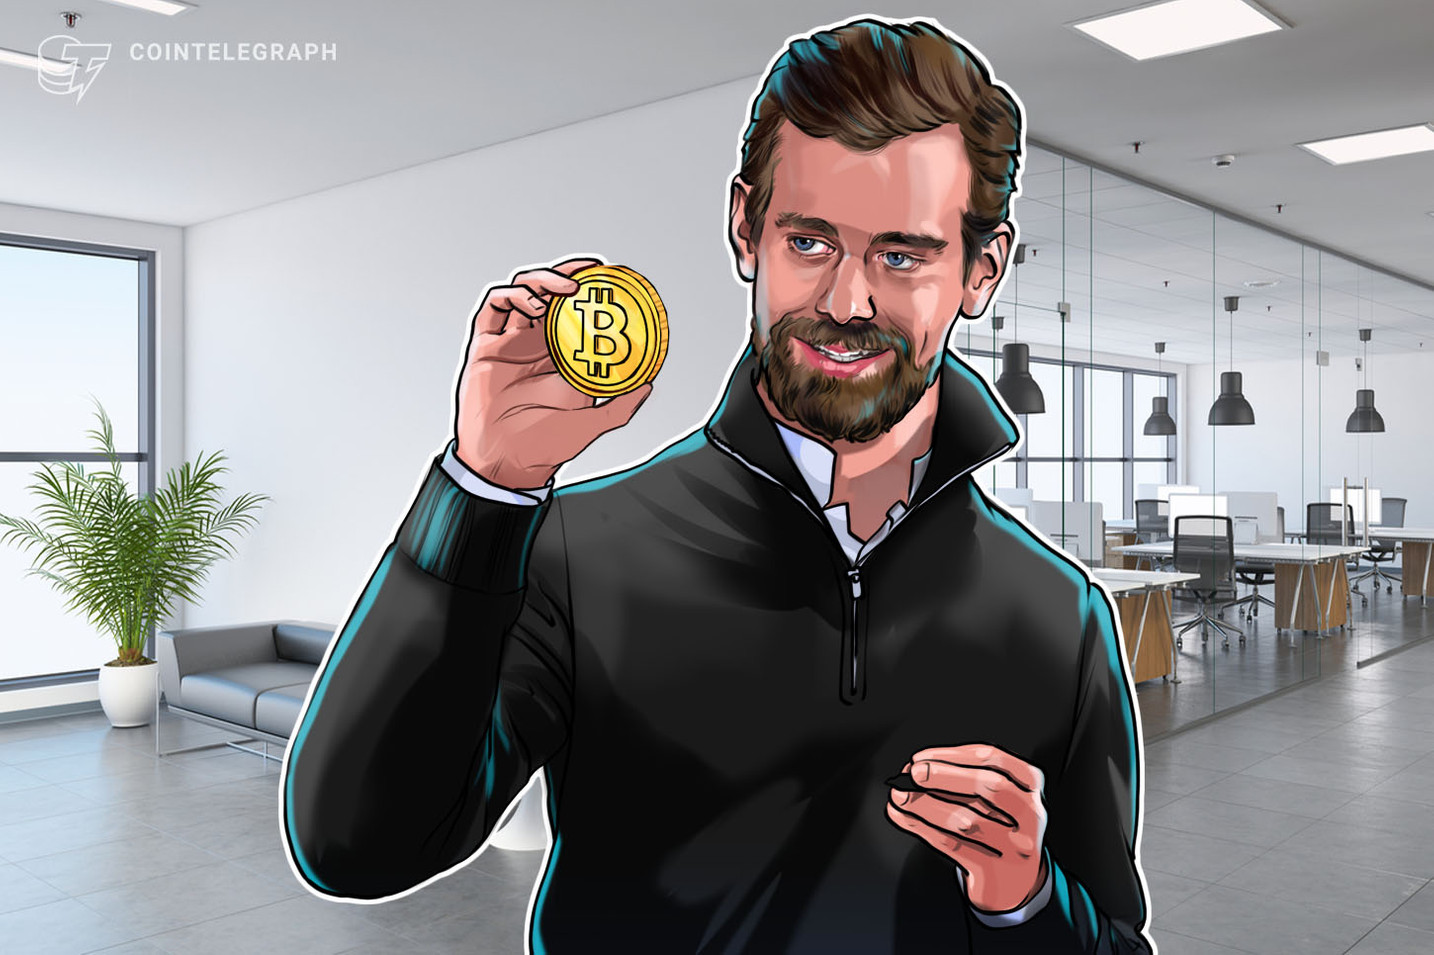 Twitter CEO Jack Dorsey Alludes to Spending $10,000 a Week on Bitcoin